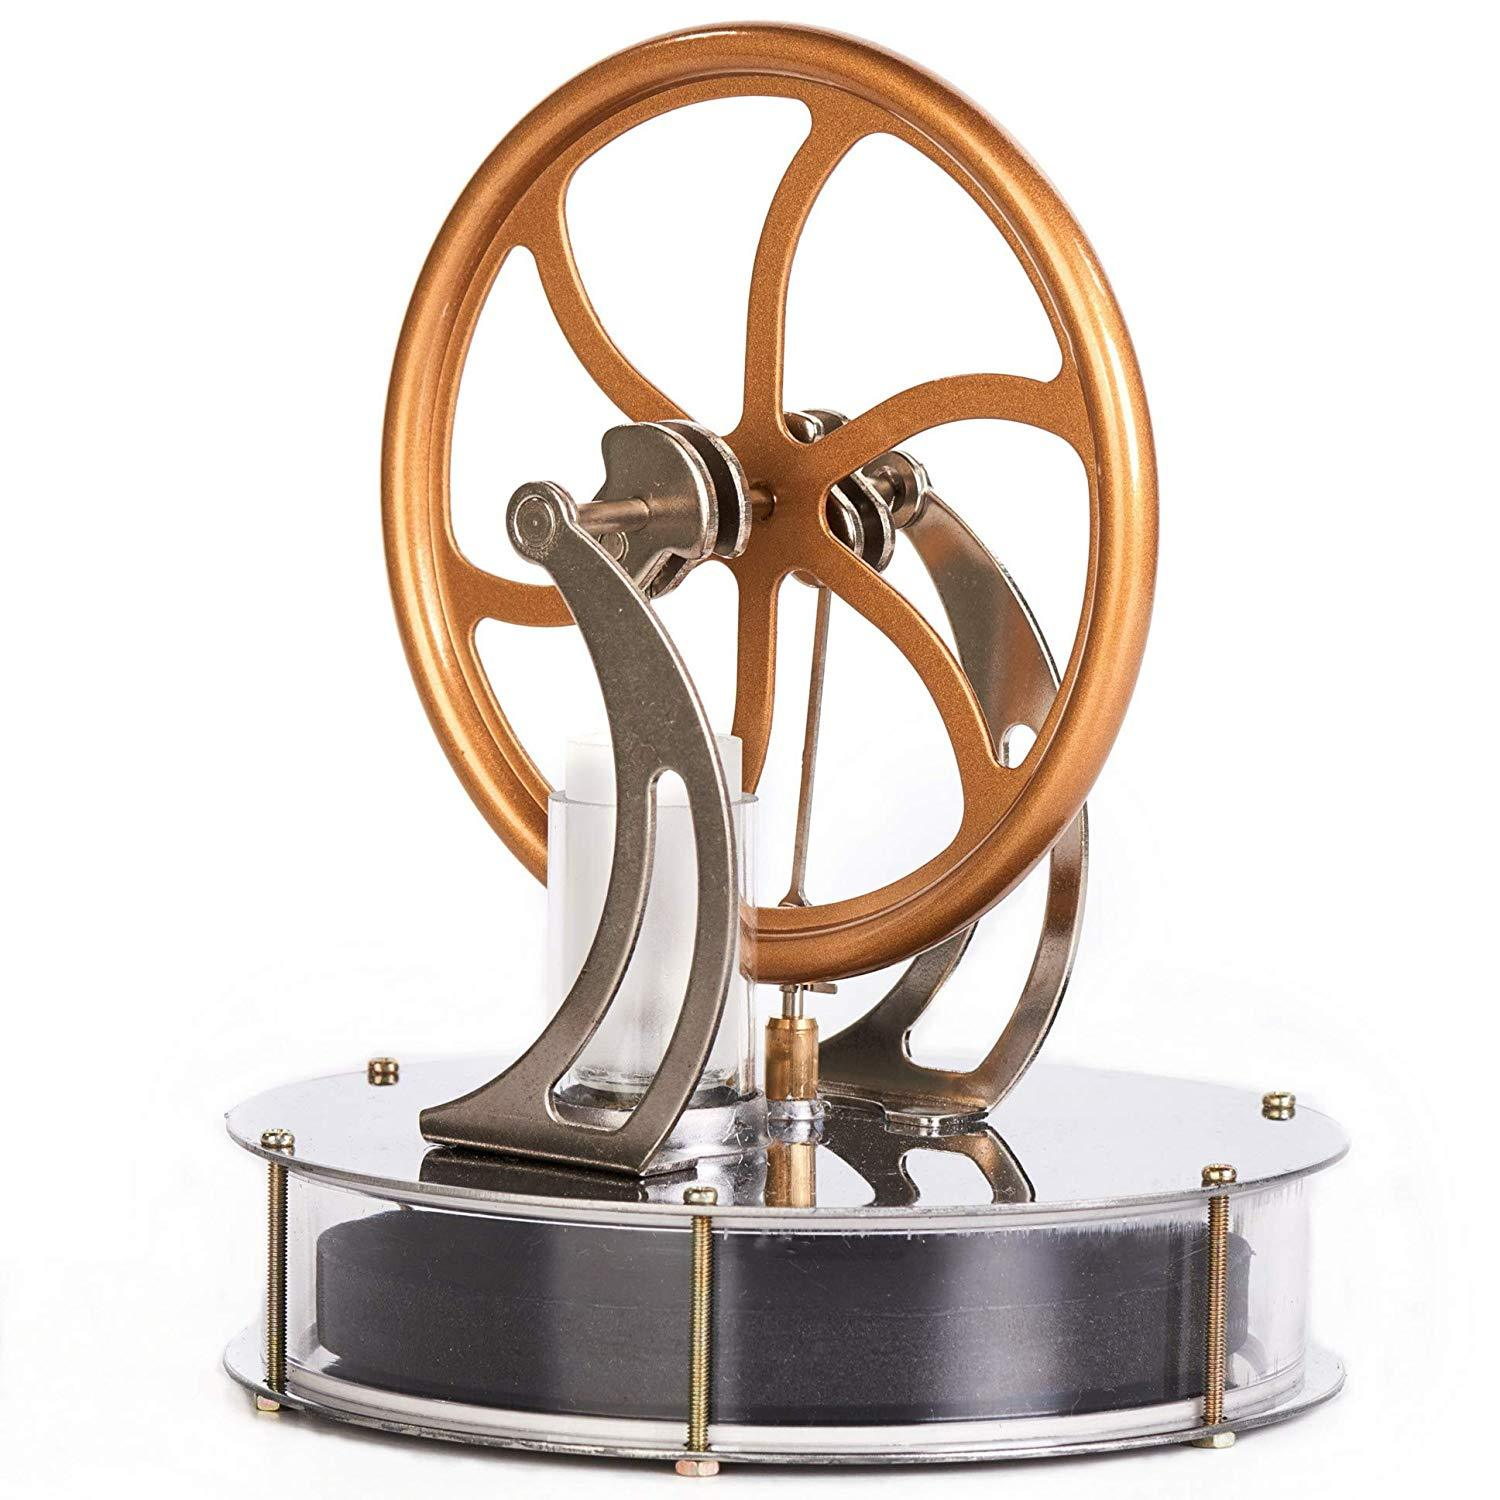 Stirling Engine Model (Free Shipping)